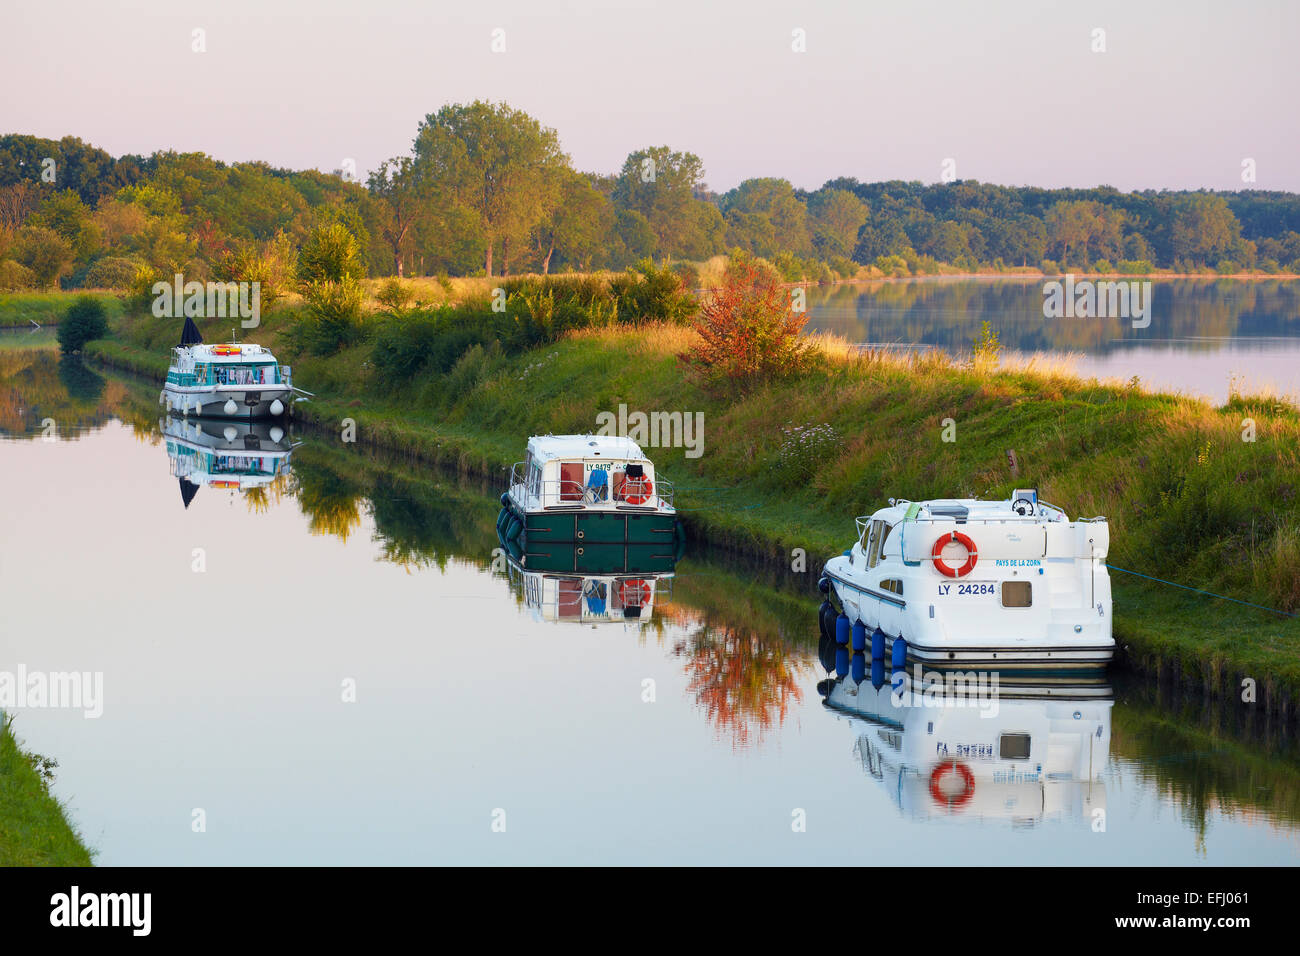 Summer morning on the Canal de la Marne au Rhin at Gondrexange, Houseboat, Moselle, Region Alsace Lorraine, France, - Stock Image